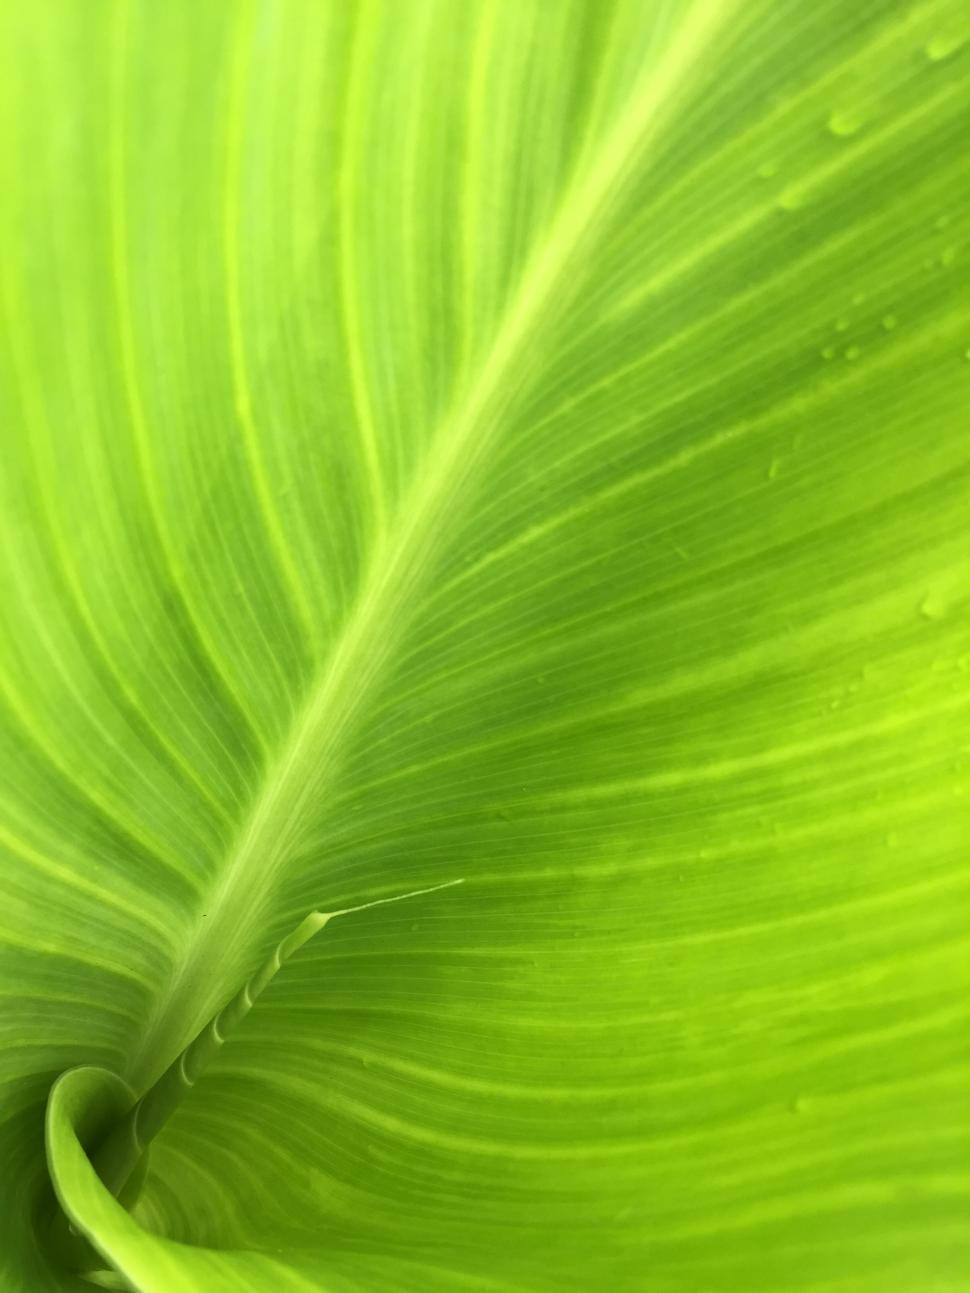 Download Free Stock HD Photo of Green leaf with veins  Online